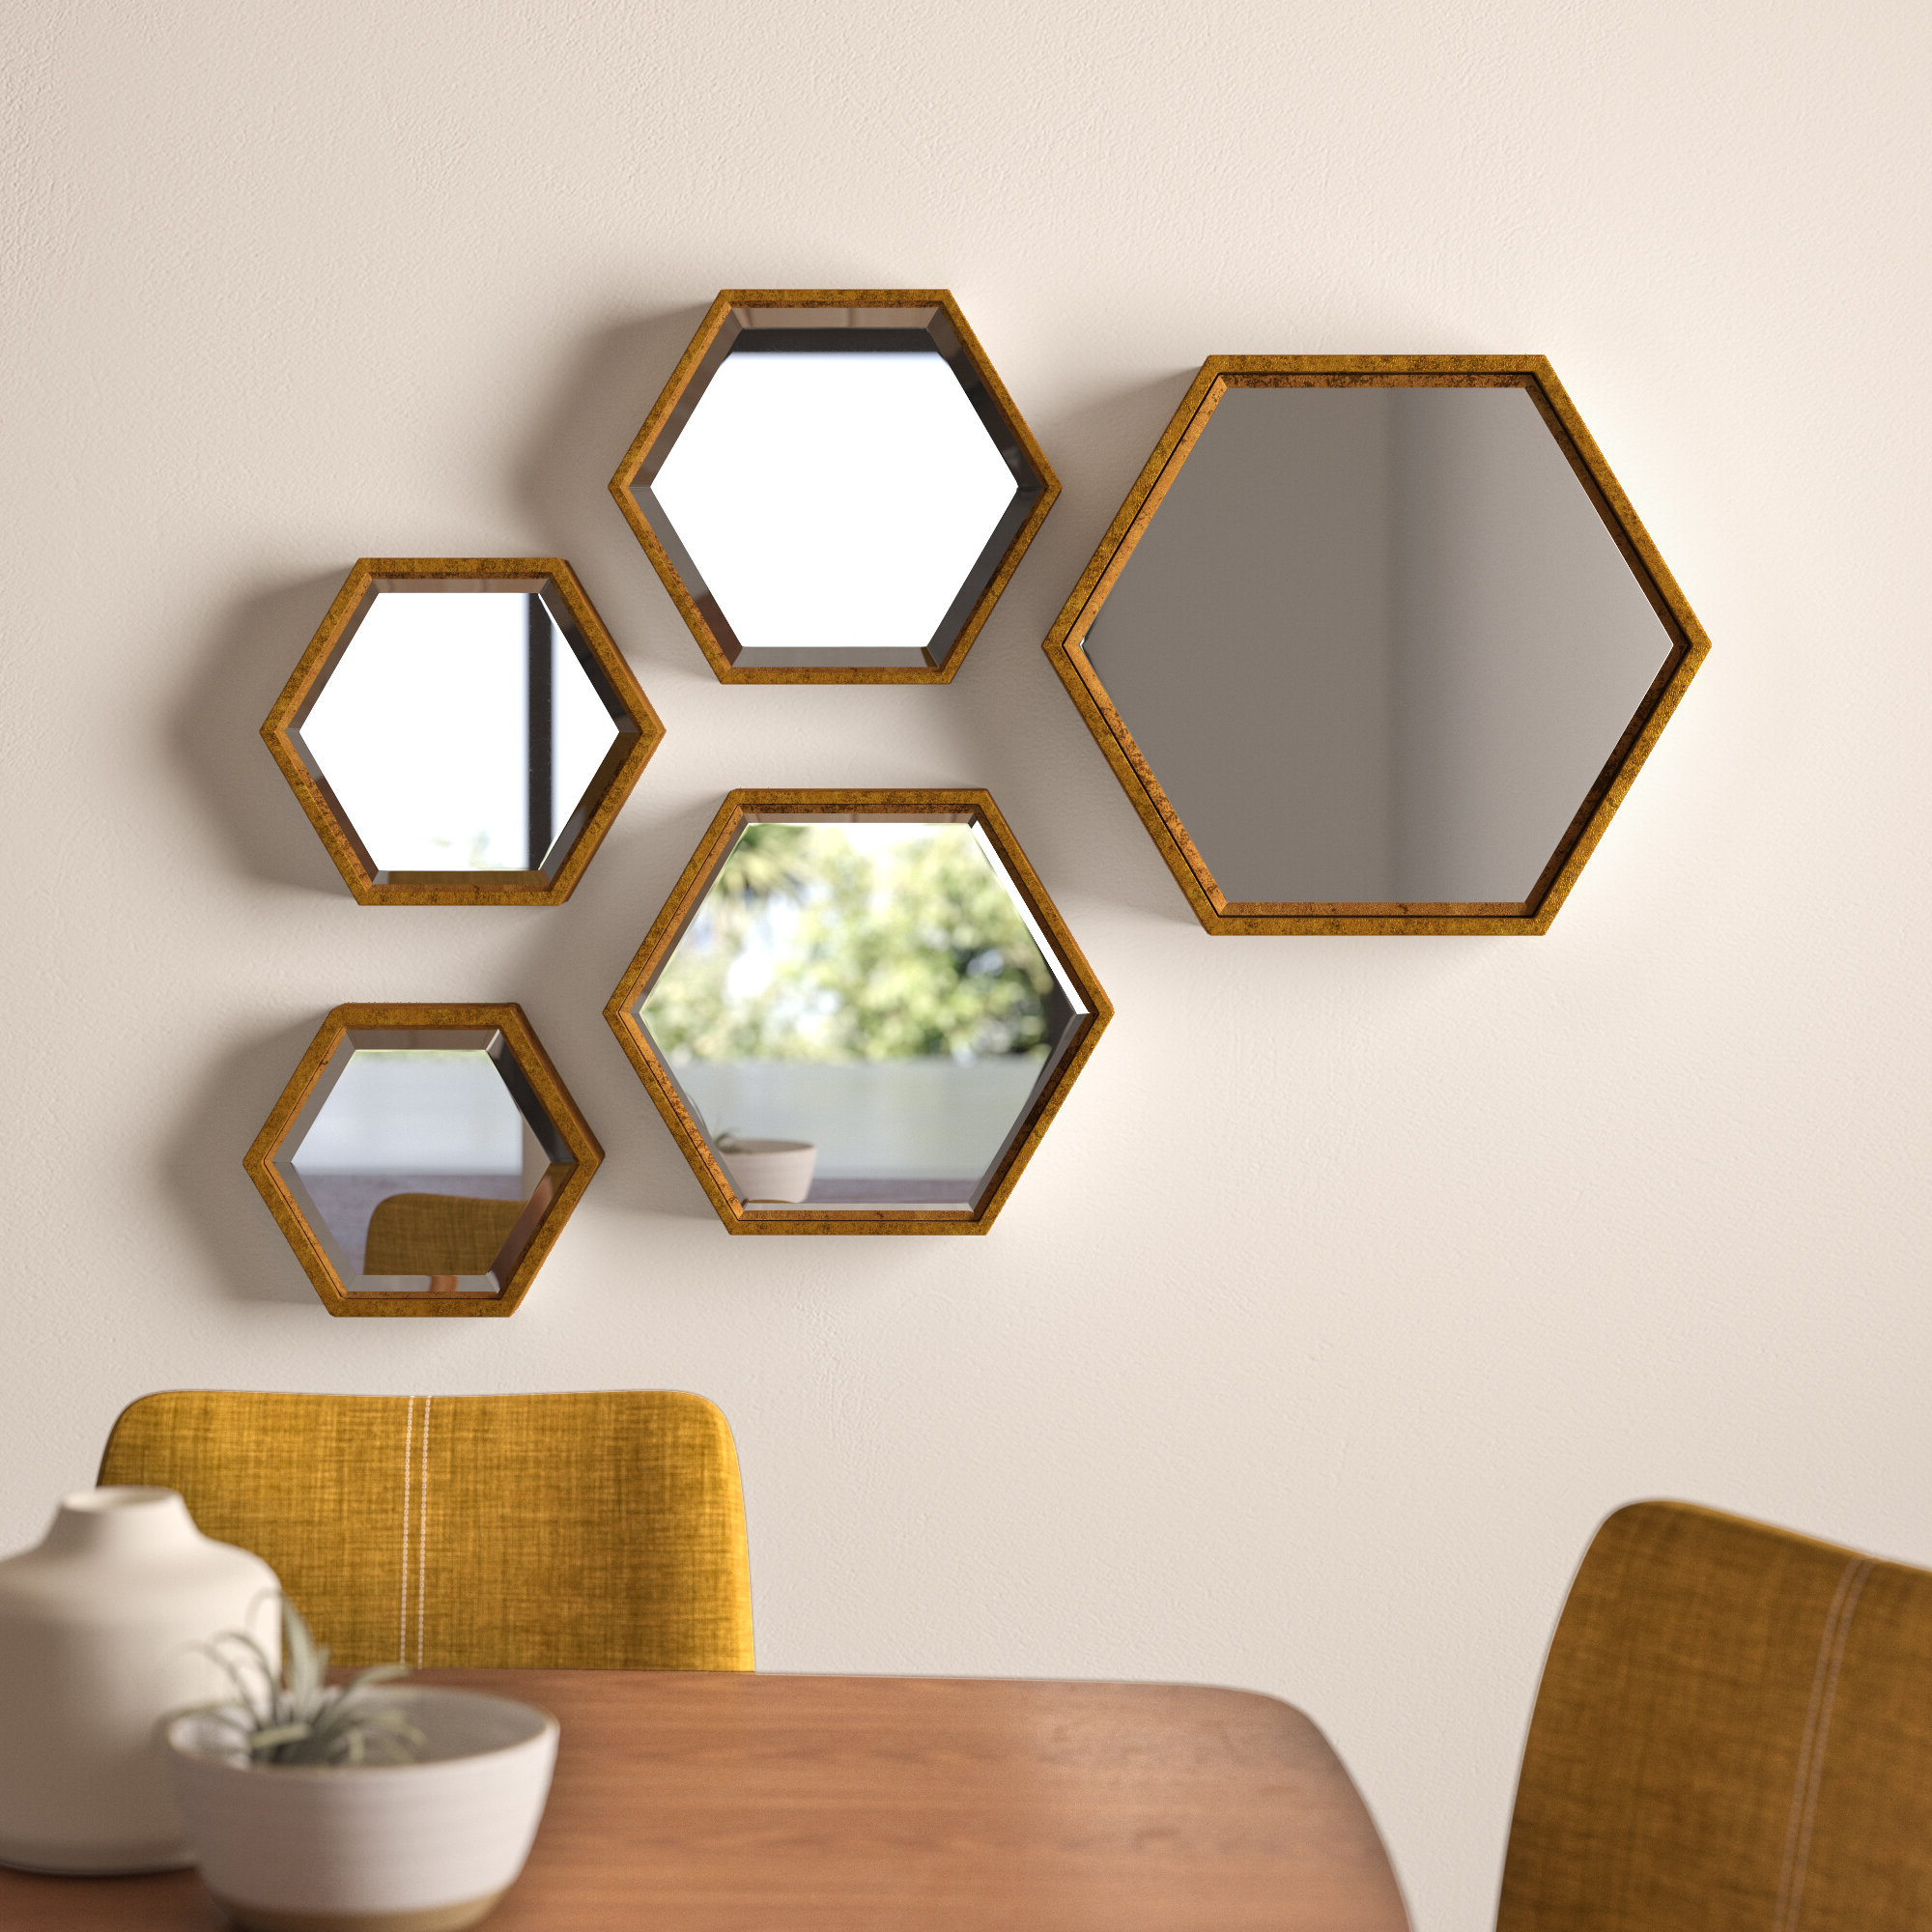 5 Piece Ashford Hexagonal Mirror Set Intended For Popular Gia Hexagon Accent Mirrors (View 15 of 20)